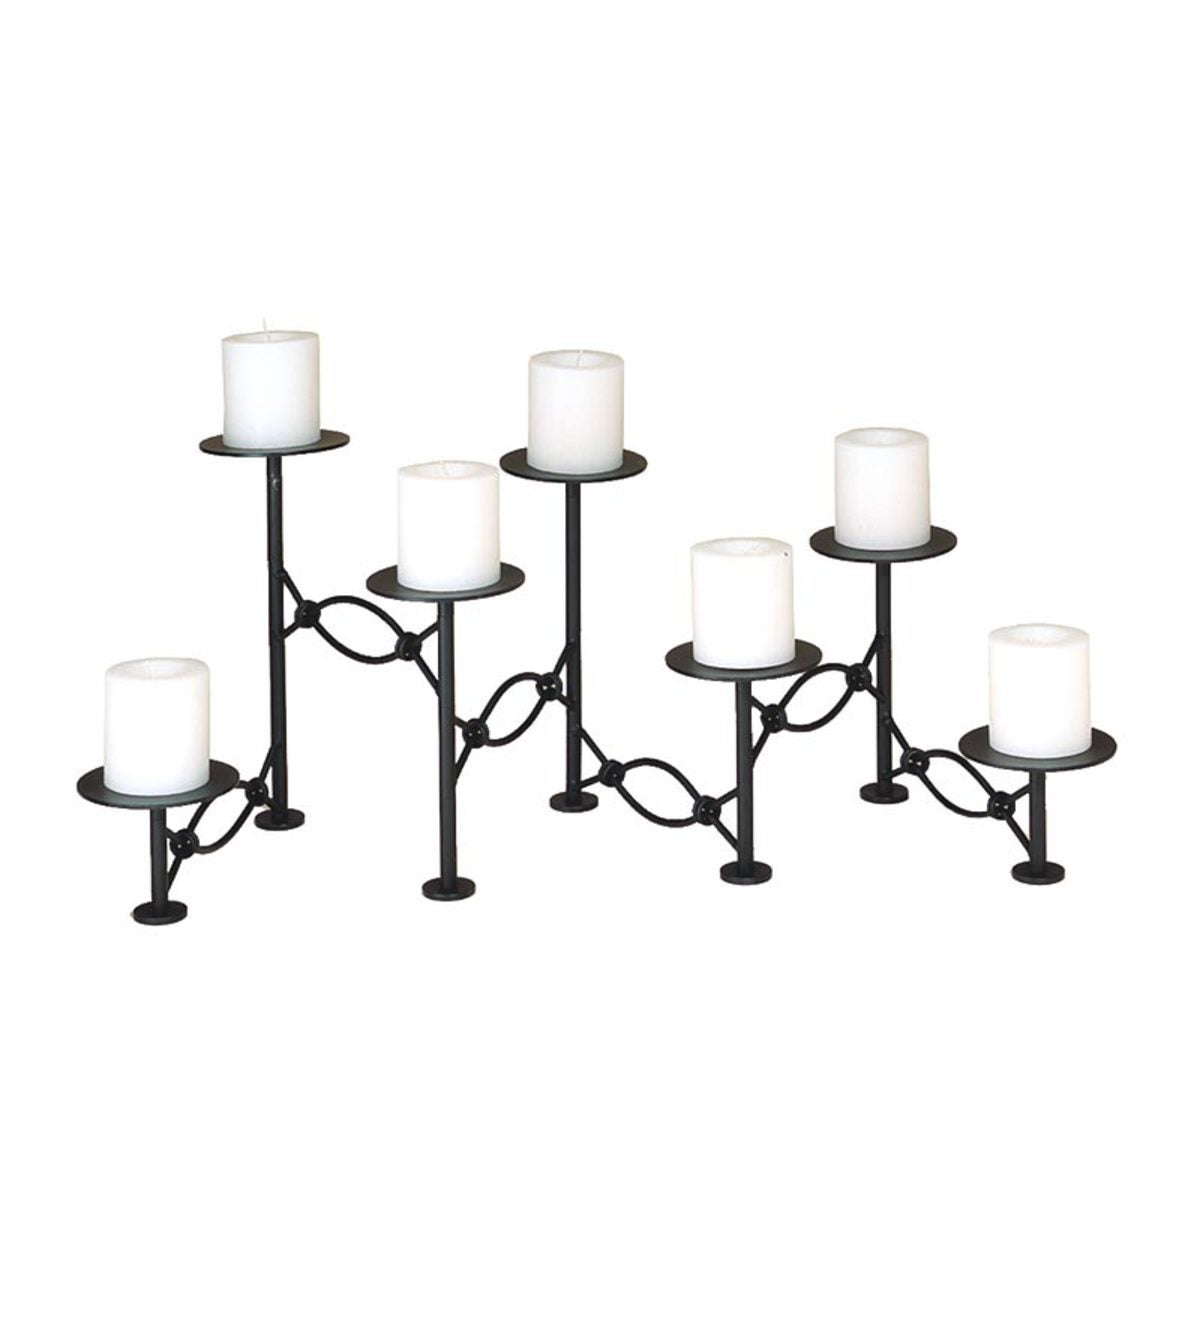 Iron Seven-Tiered Linked Fireplace Candelabra